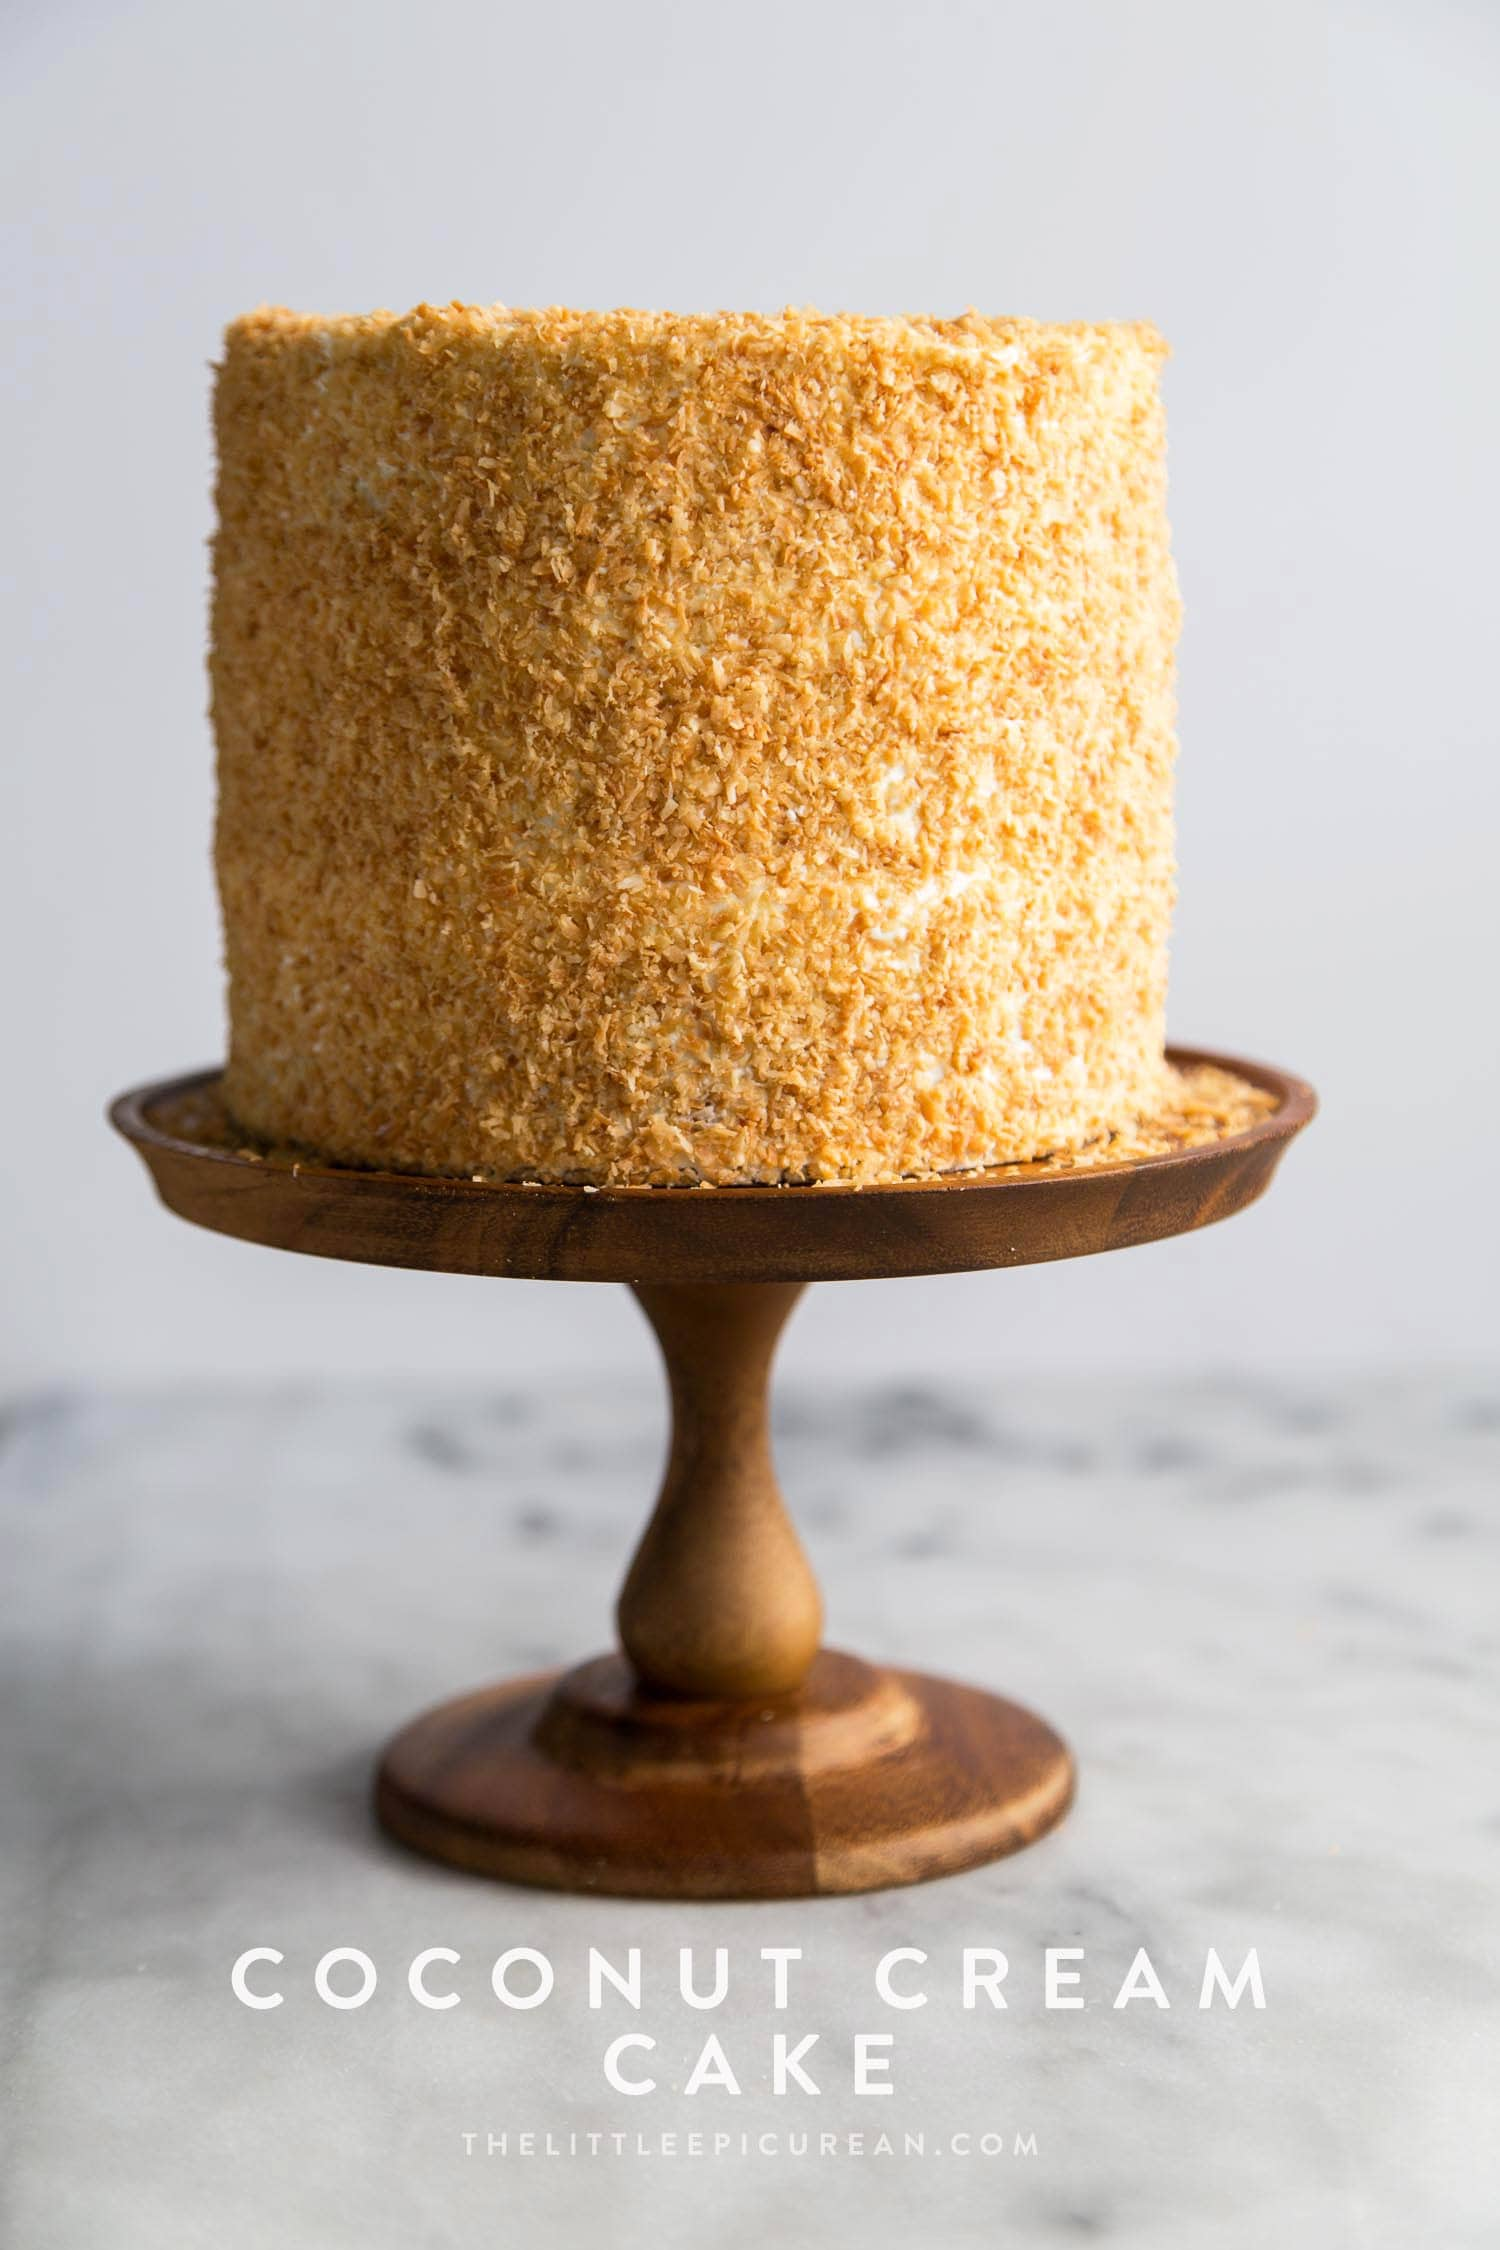 Coconut Cream Cake with toasted coconut